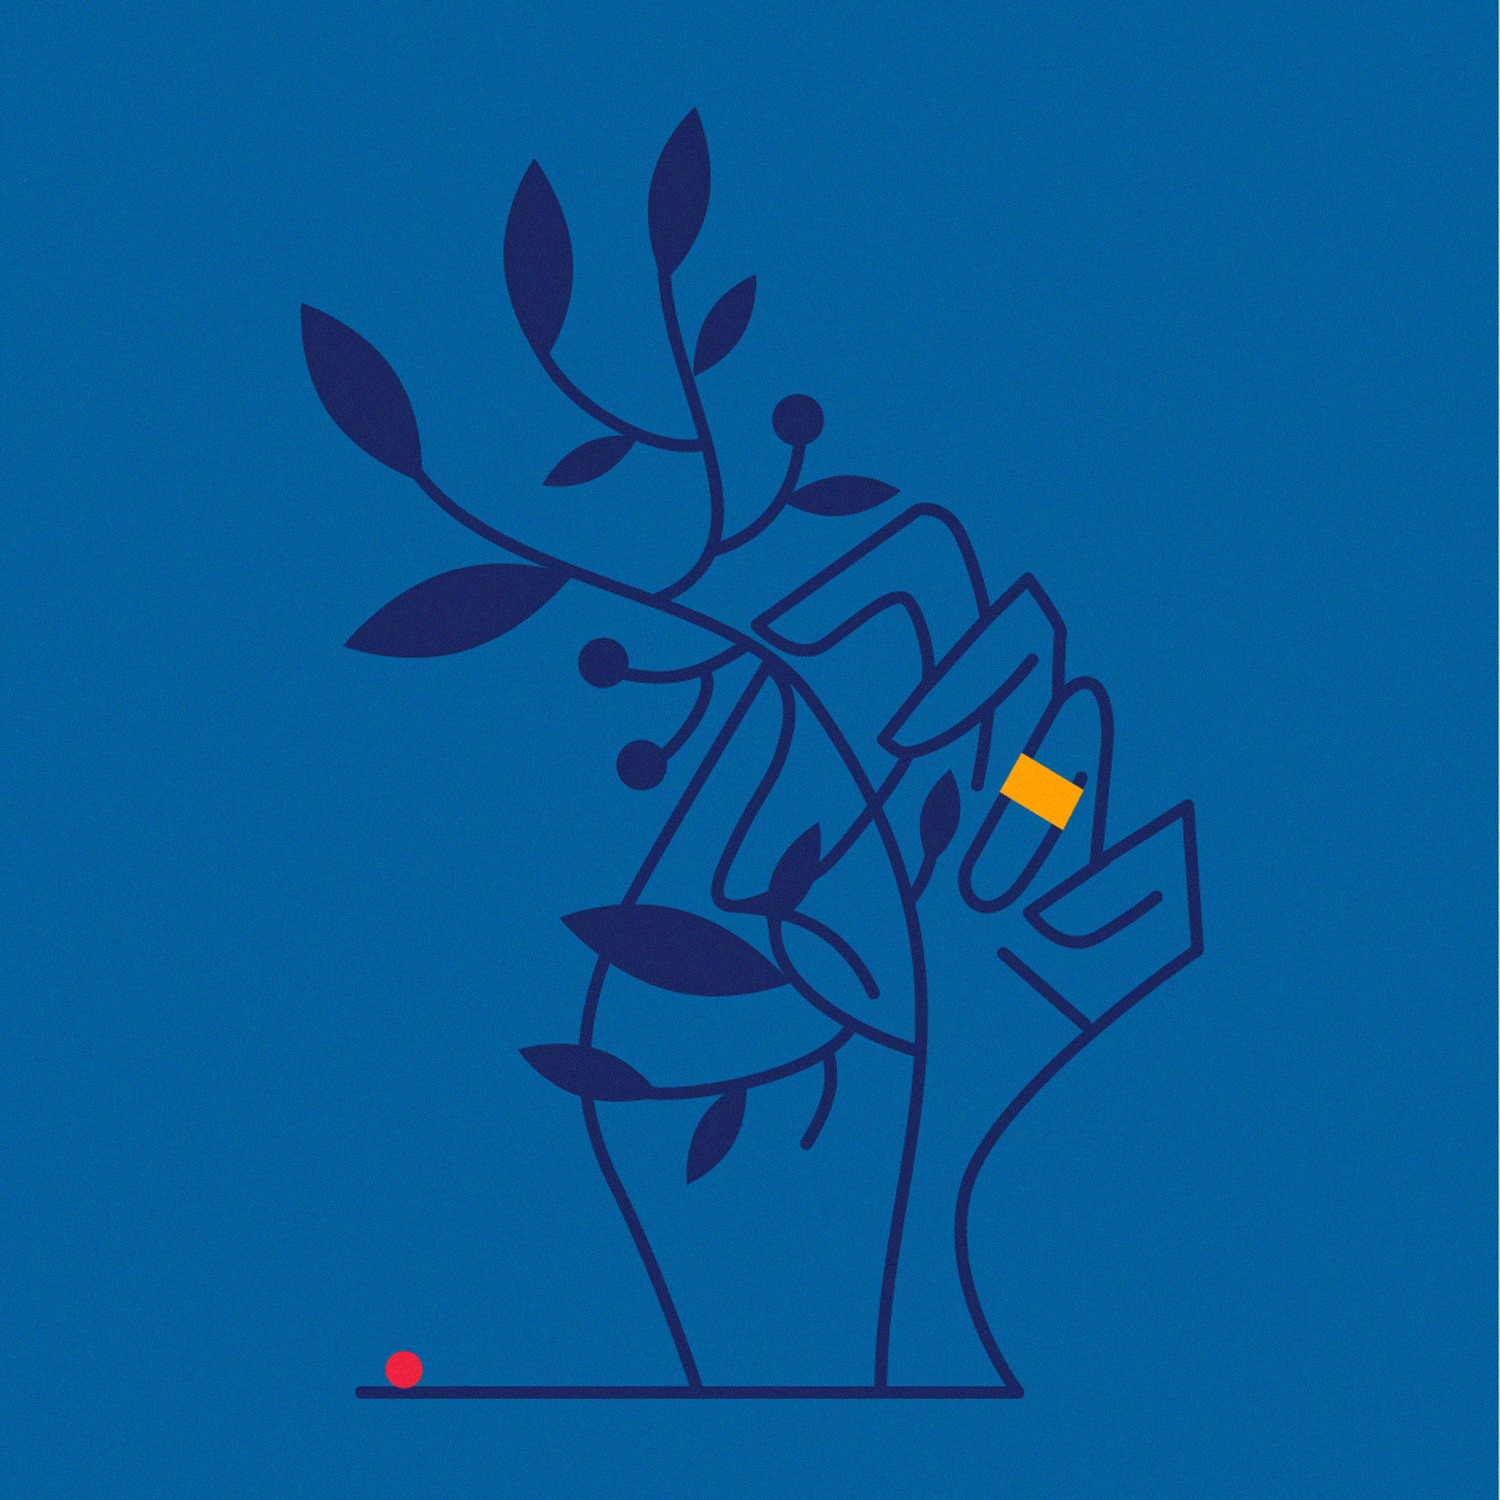 A hand holding a plant, minimal art, artwork in 3 colors